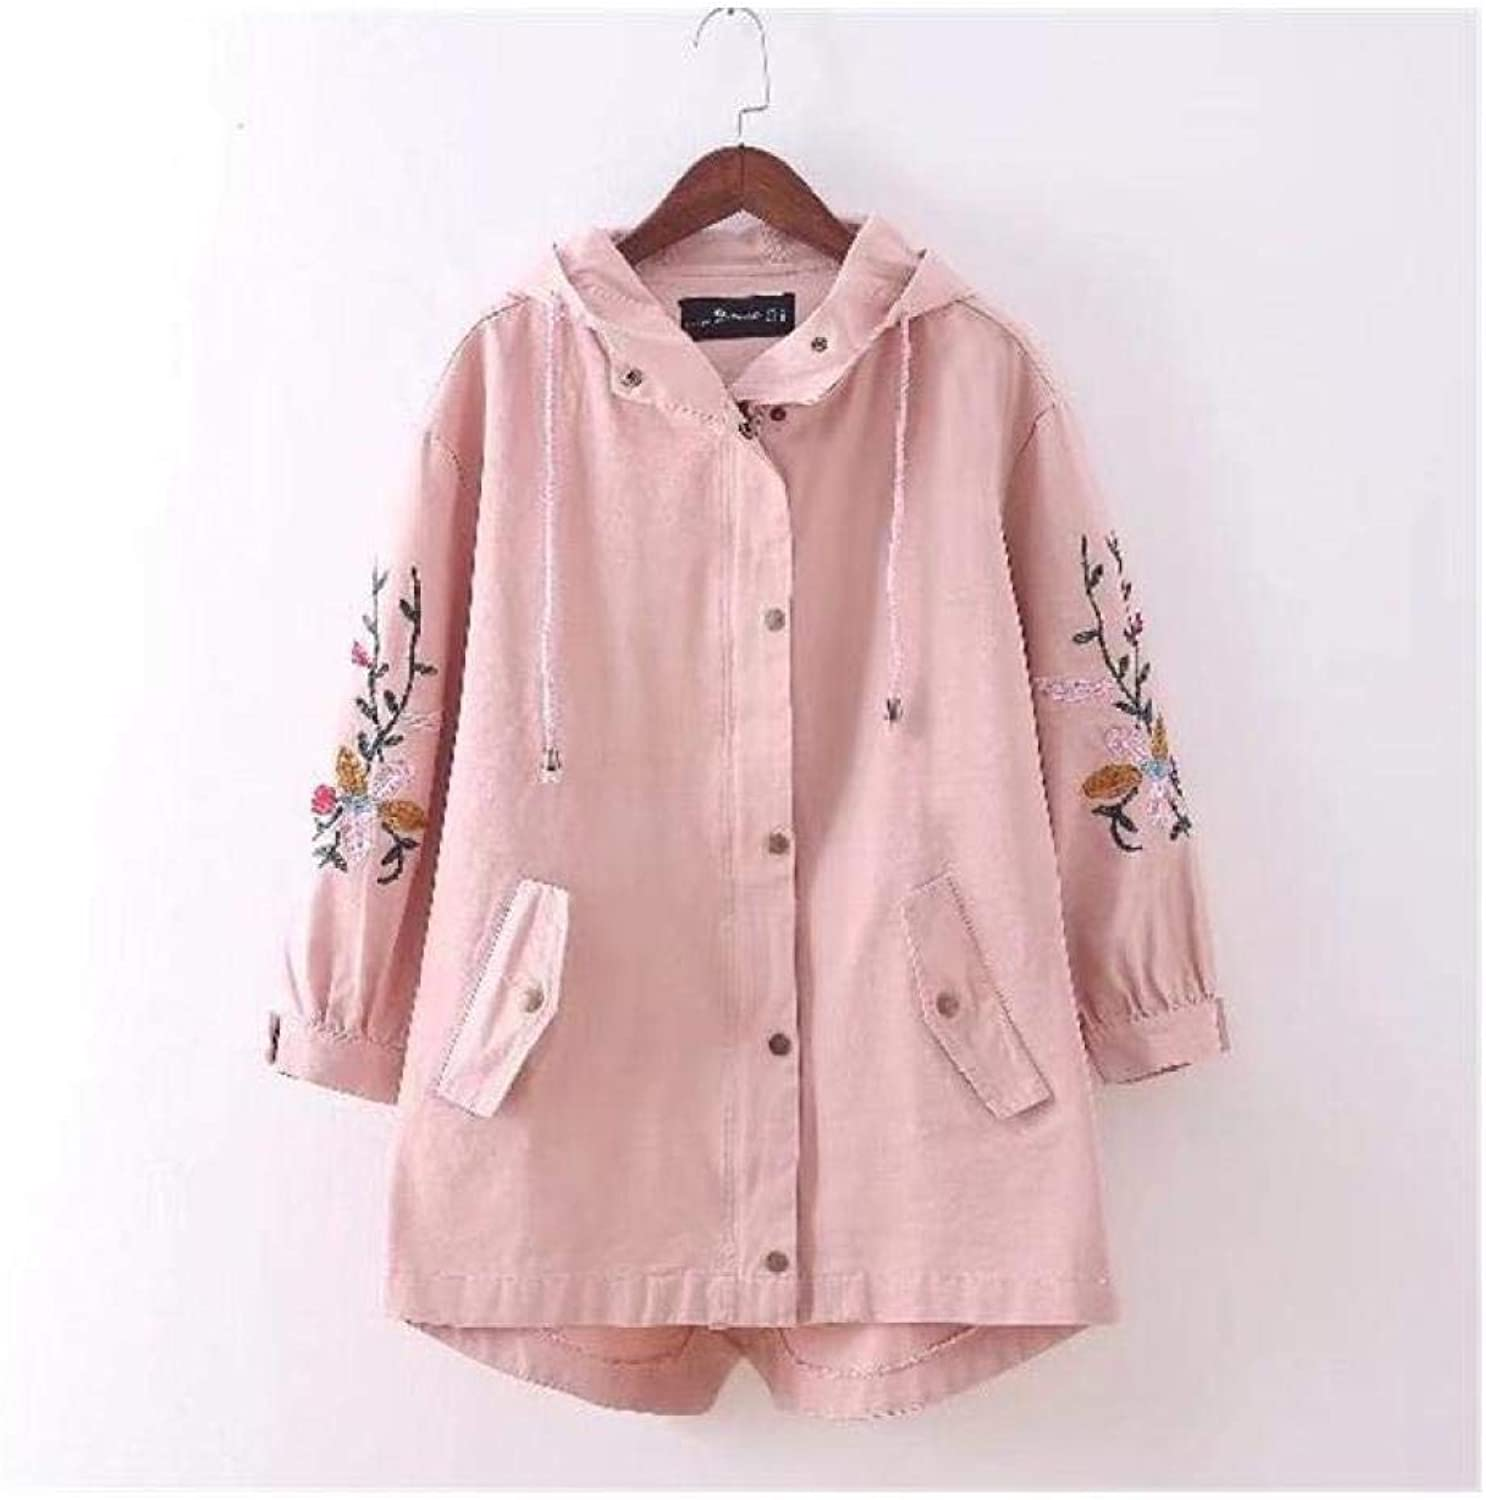 XUBA Autumn White Floral Embroidery Trench Women Coat Long Loose Hole Female Overcoat Hooded Coats Office Lady Long Trench Coats Brown XL